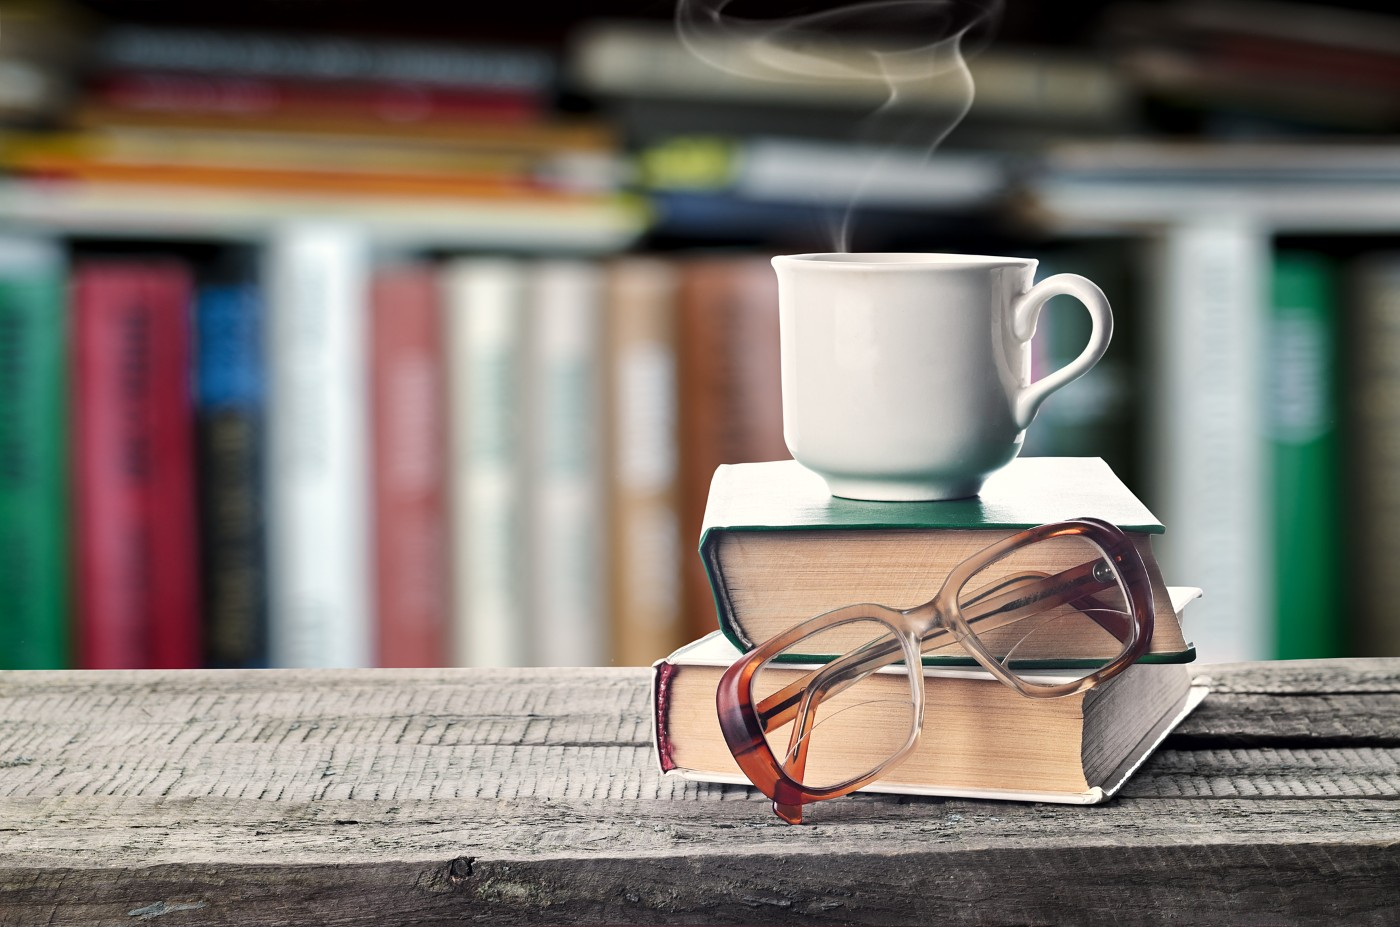 https://tickertapecdn.tdameritrade.com/assets/images/pages/md/Two books, cup of coffee, and glasses: Classic investing books to add to your reading list for better trading